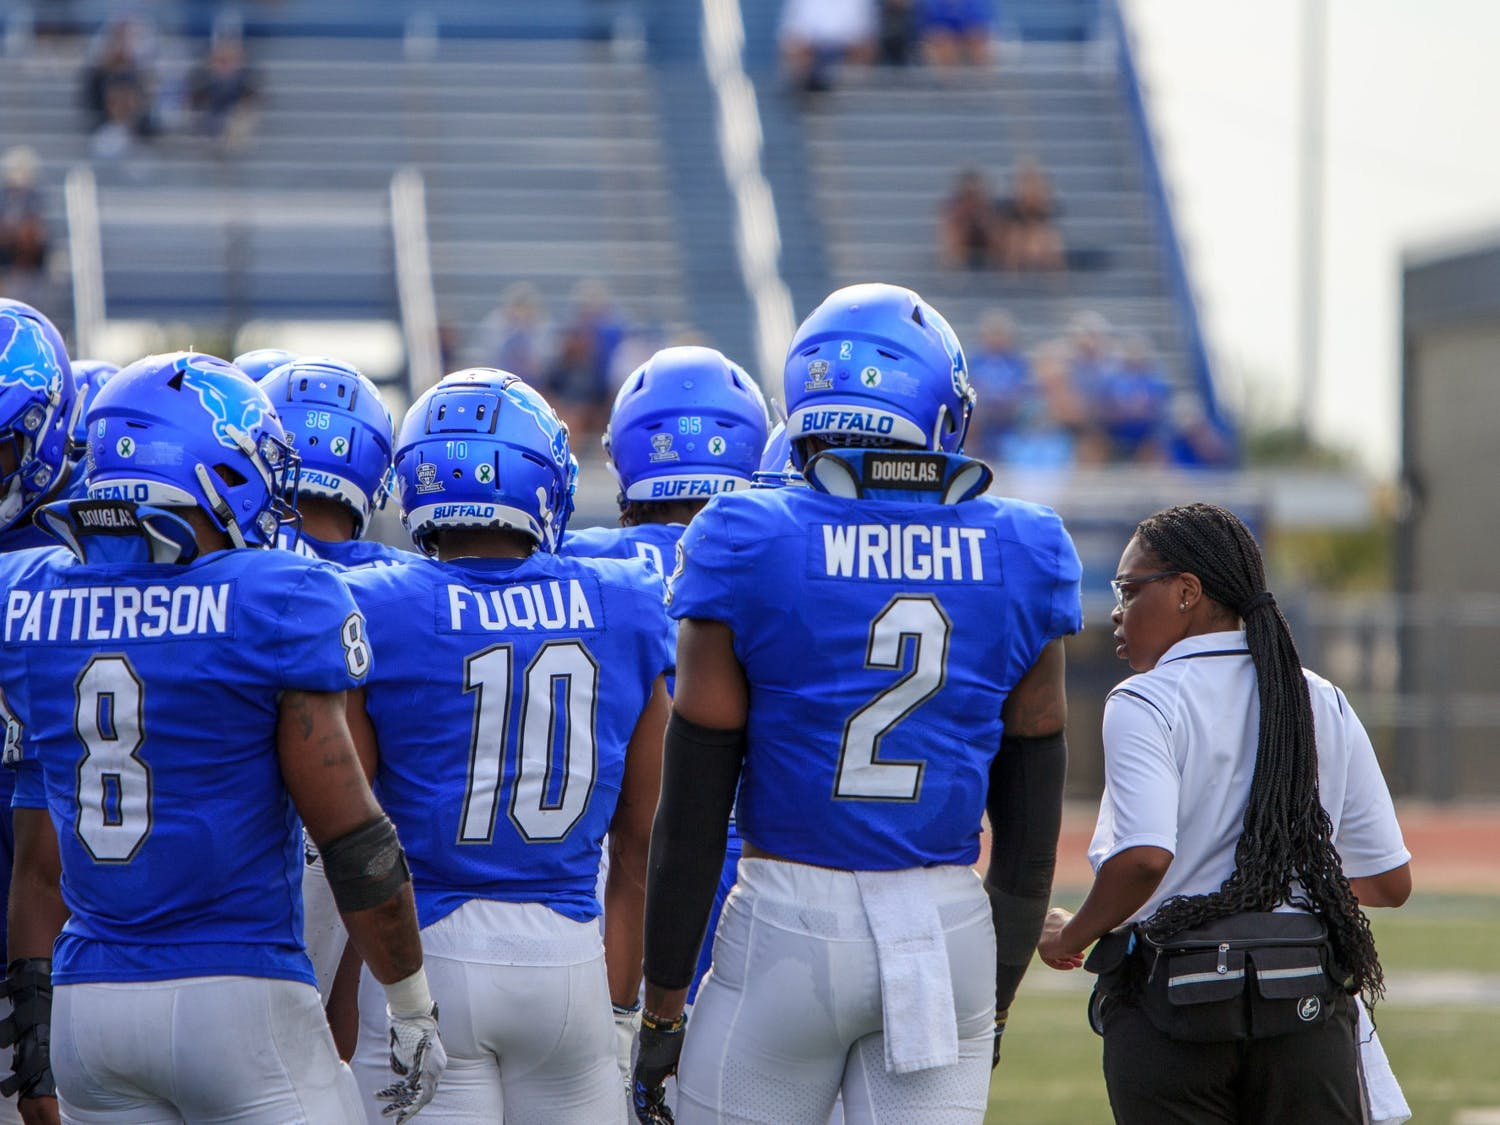 Safety Marcus Fuqua (10) and linebackers Kadofi Wright (2) and James Patterson (8) get ready during a timeout.